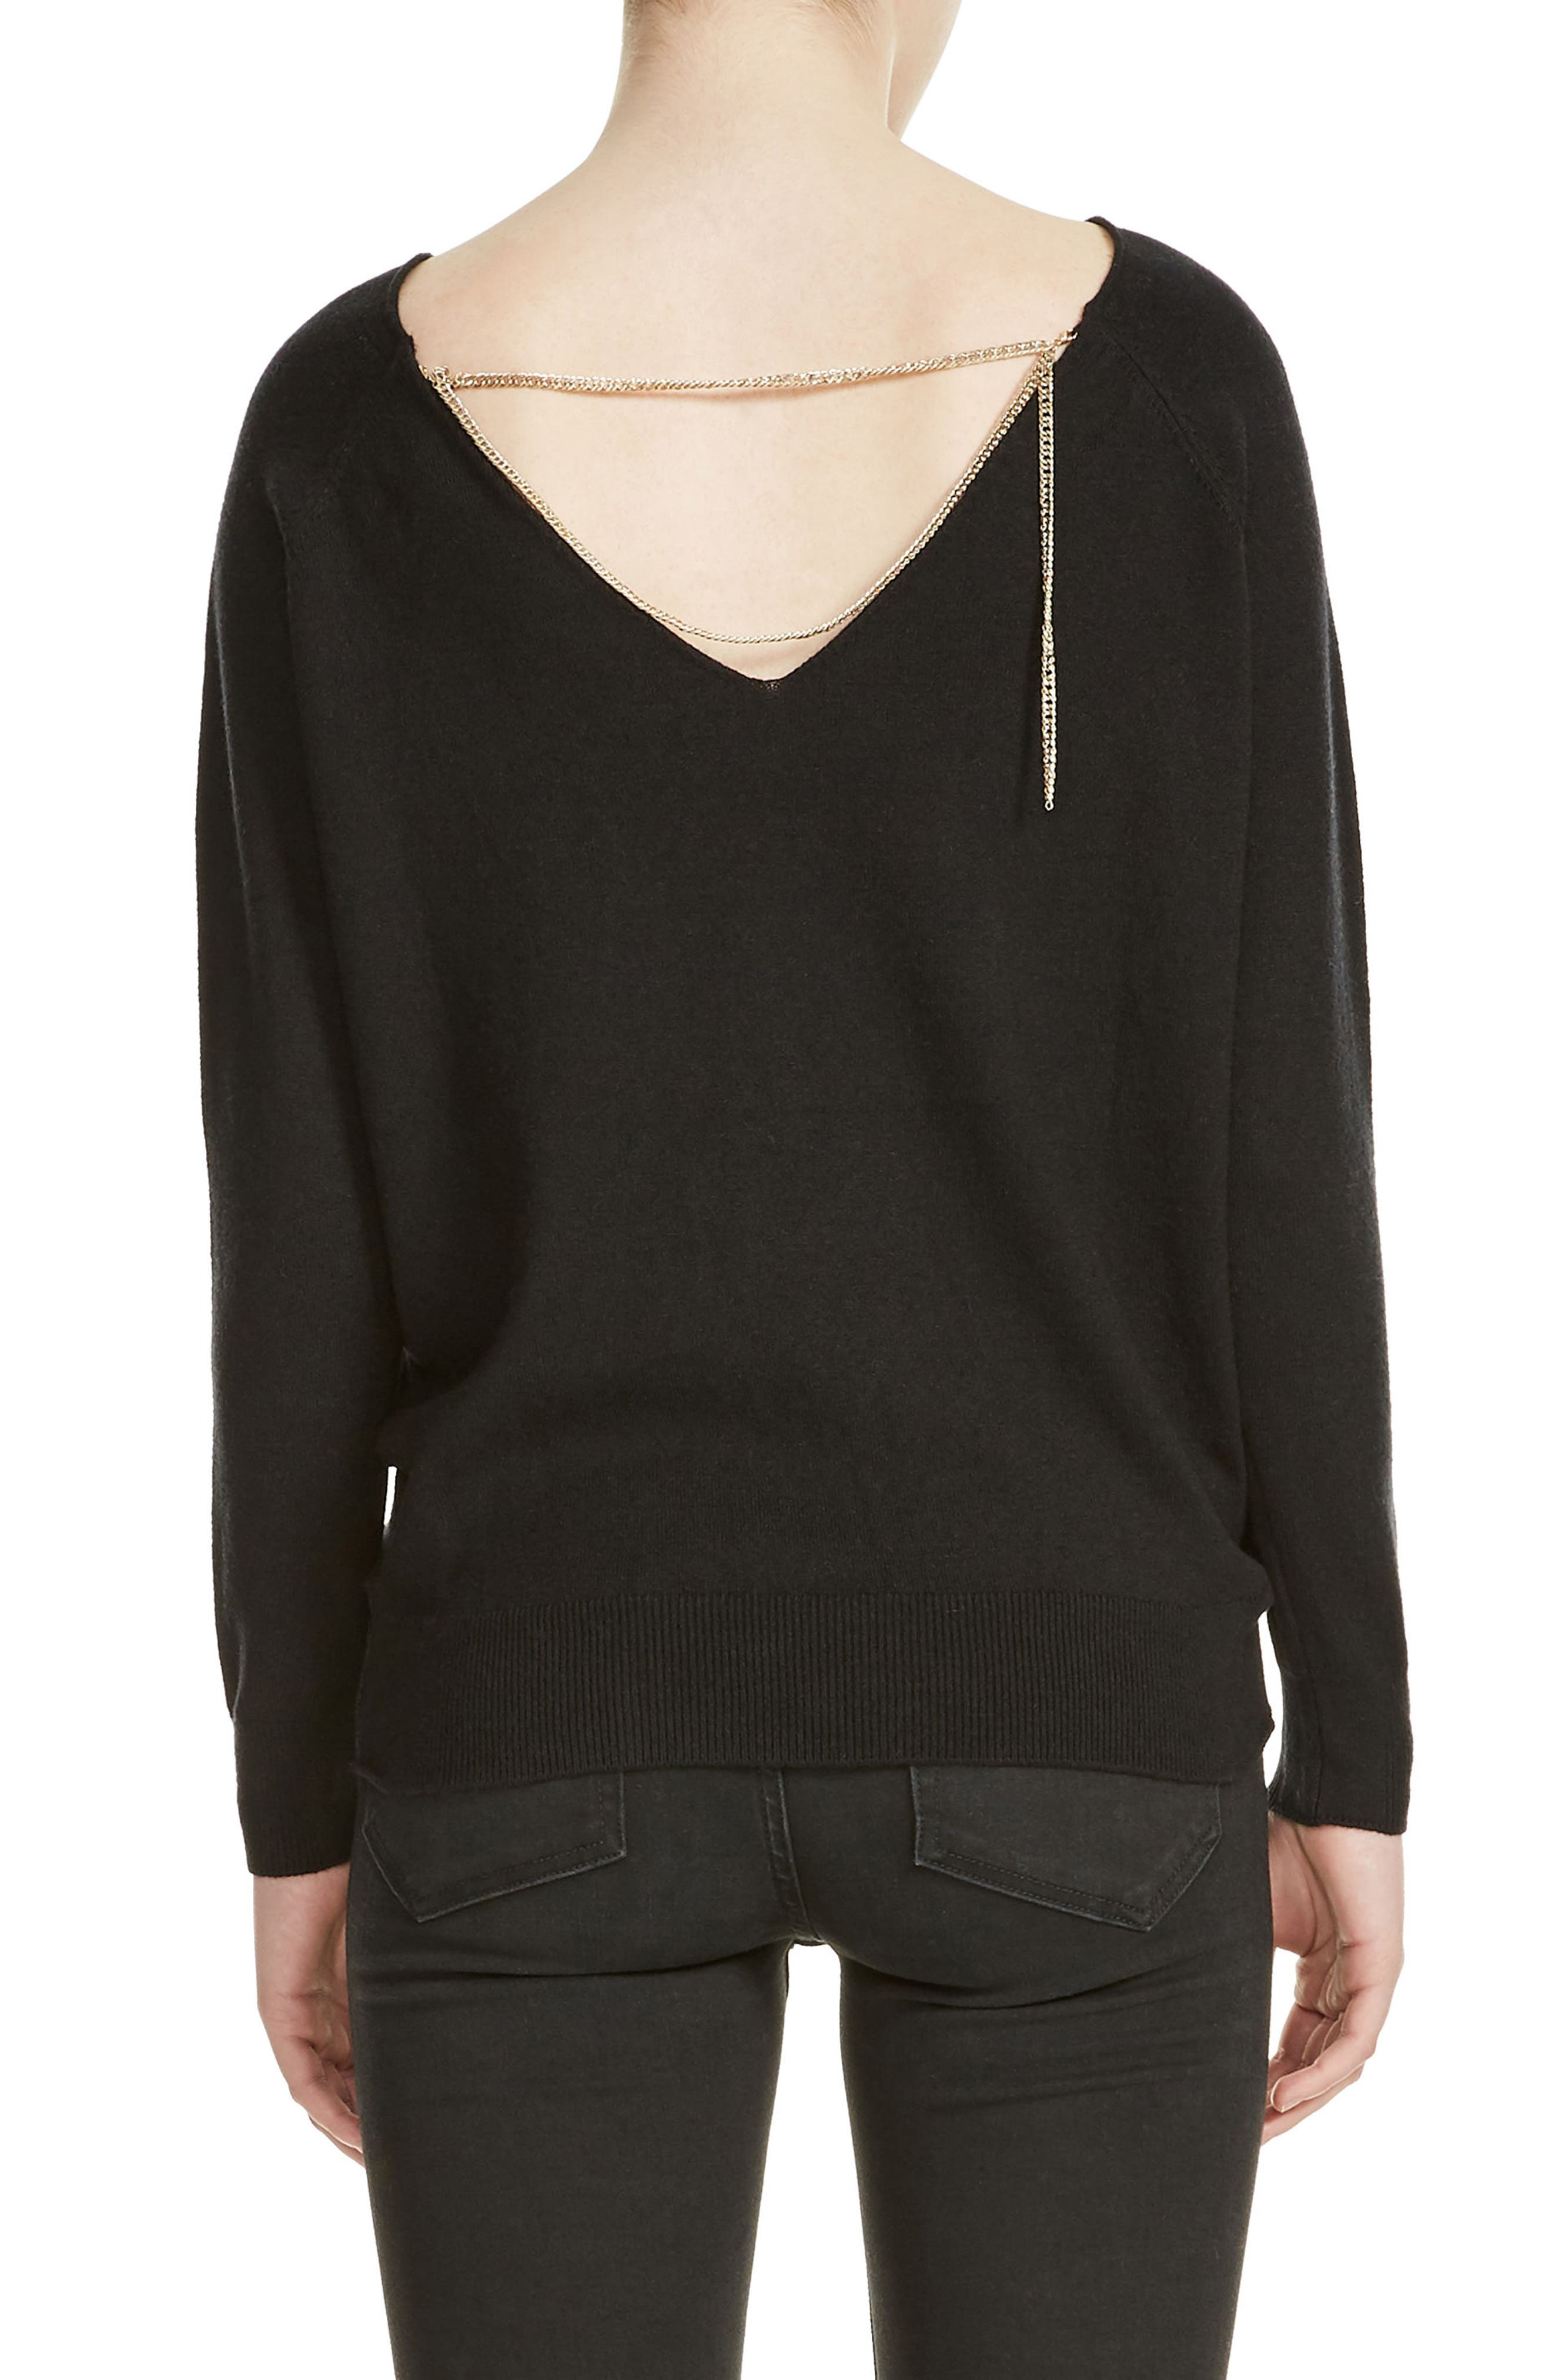 Macademia Chain Back Sweater,                             Alternate thumbnail 2, color,                             001